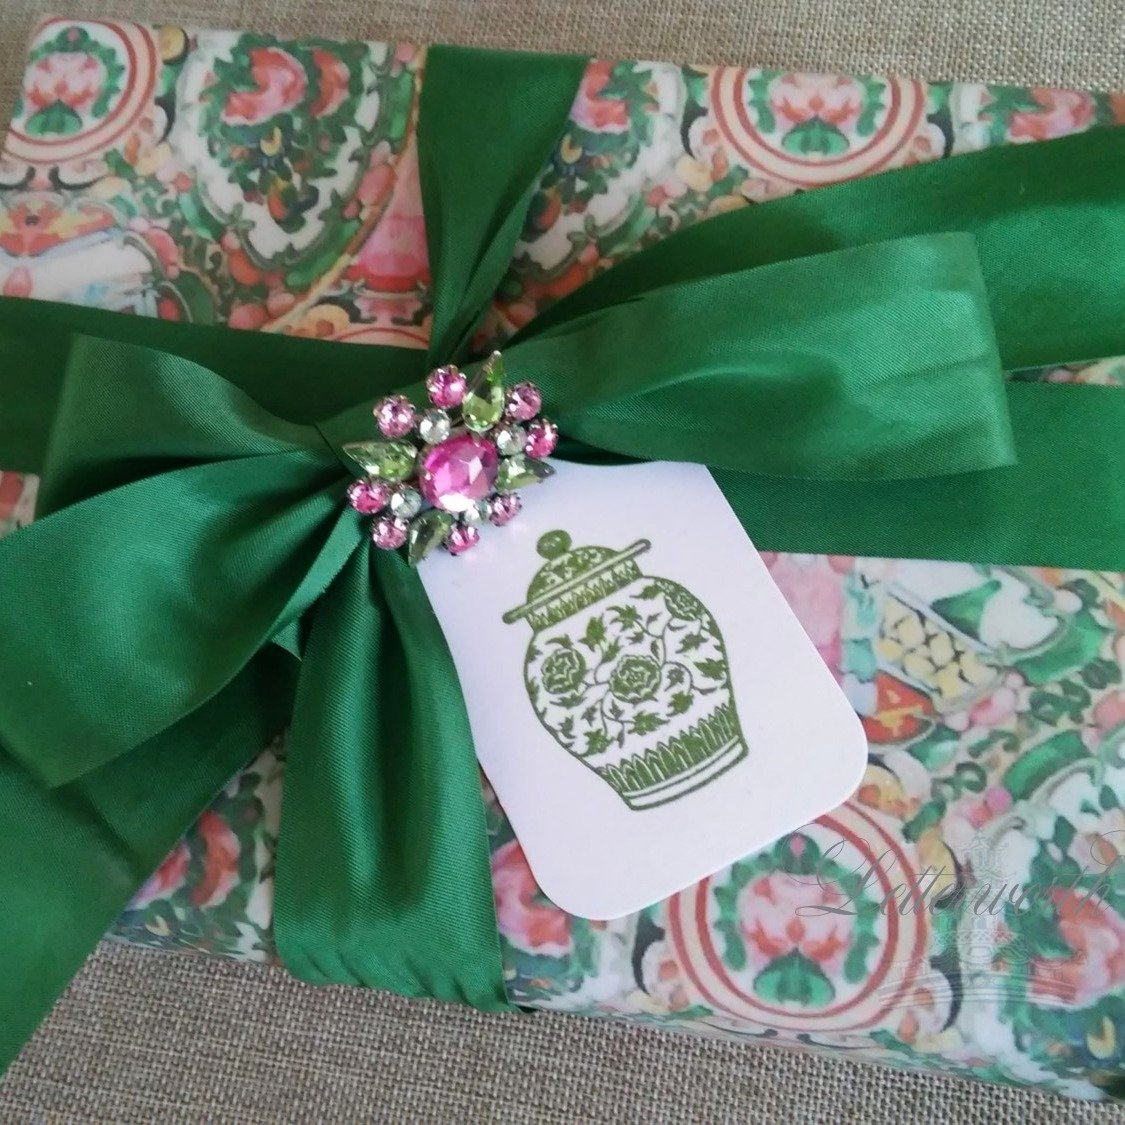 Hand-Embossed Green Ginger Jar Gift Tags by Letterworth (Set of 10)